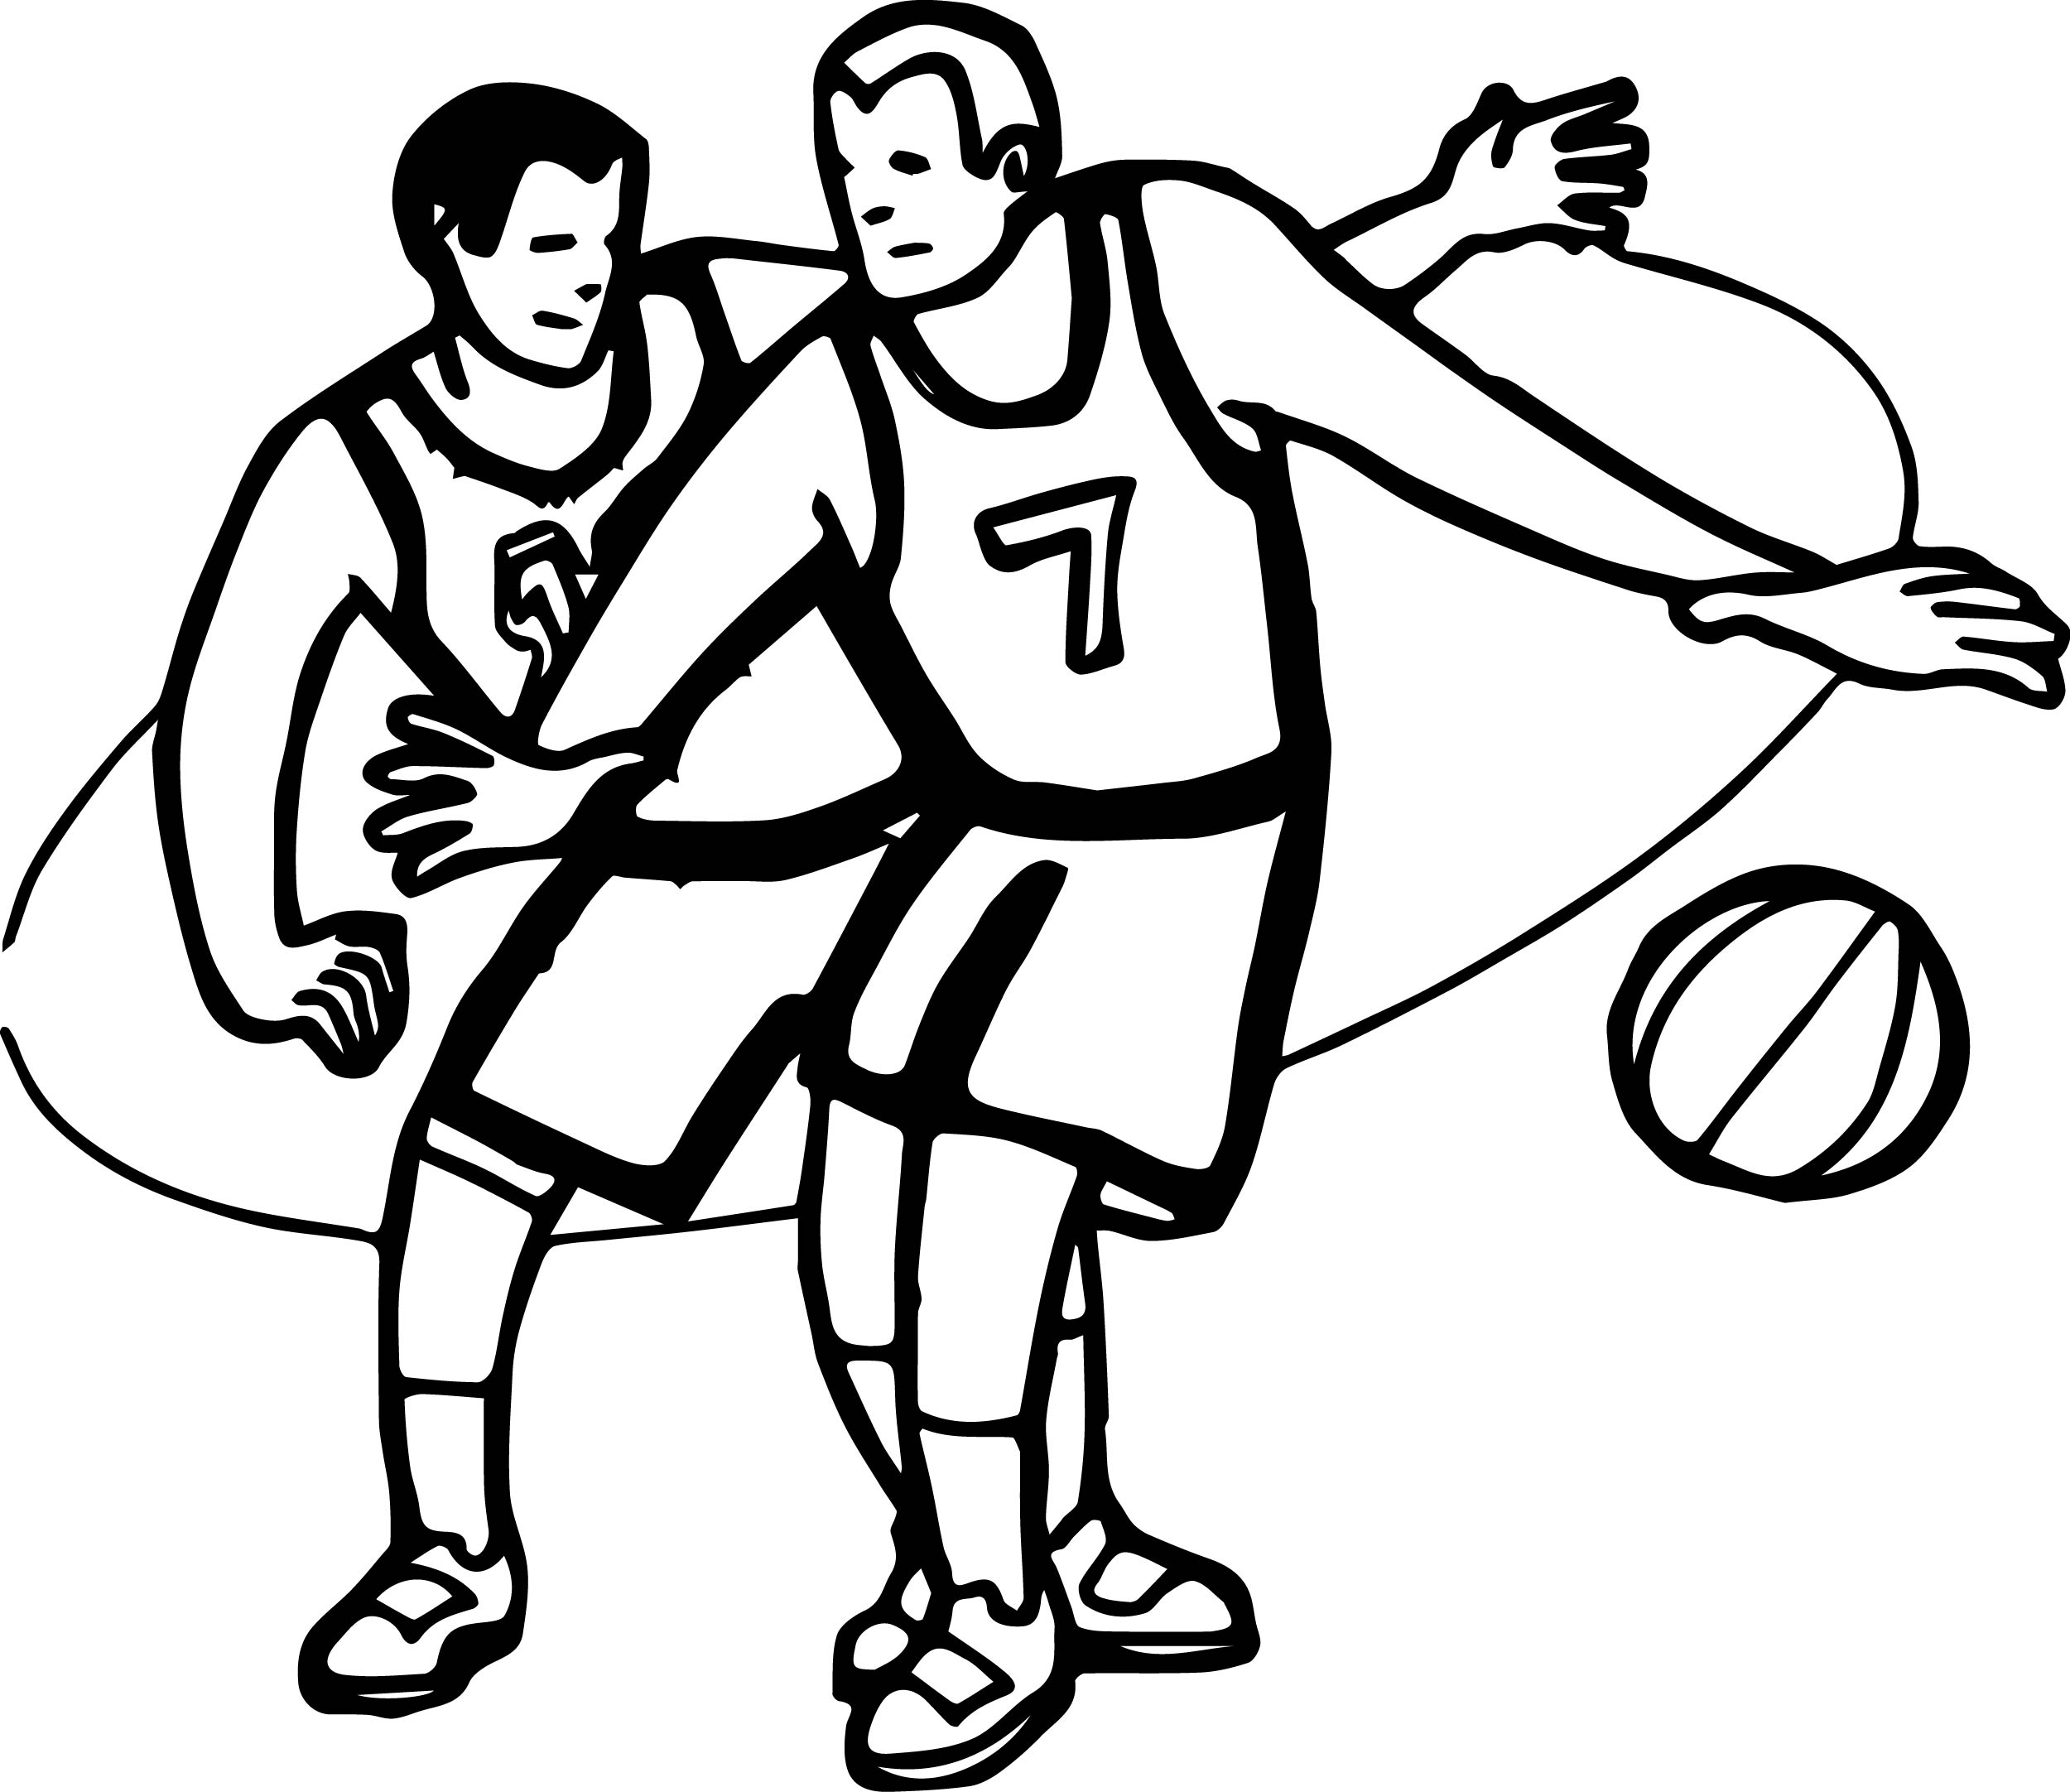 kid playing basketball coloring pages - photo#10